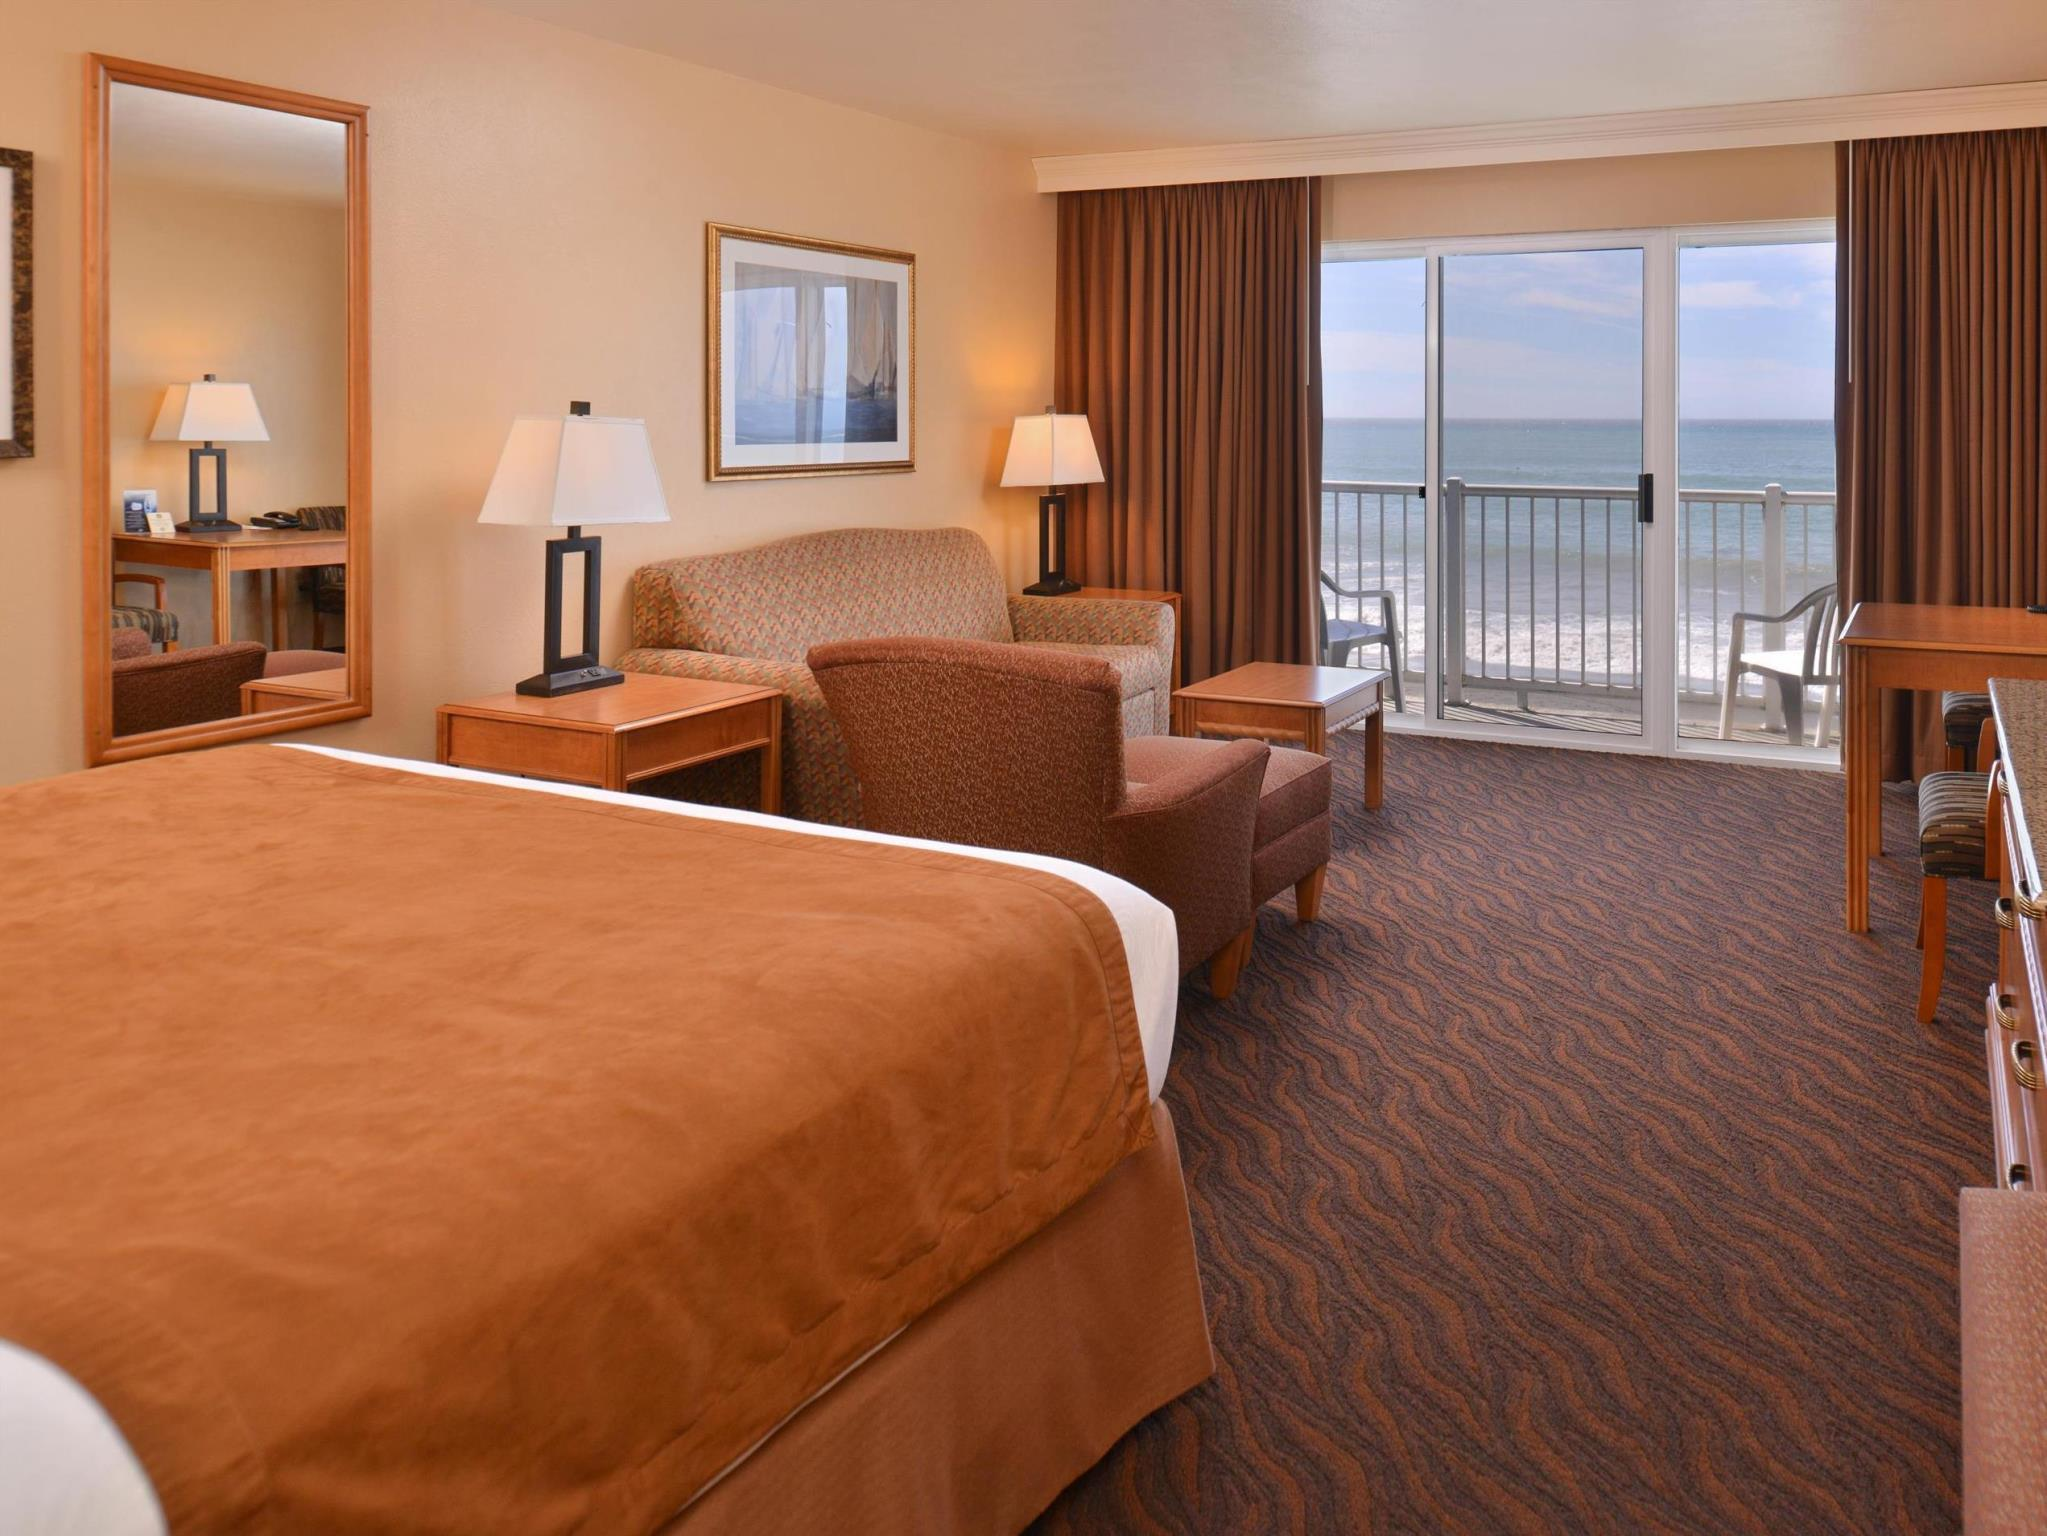 Double Queen Room with Ocean View - Non-Smoking